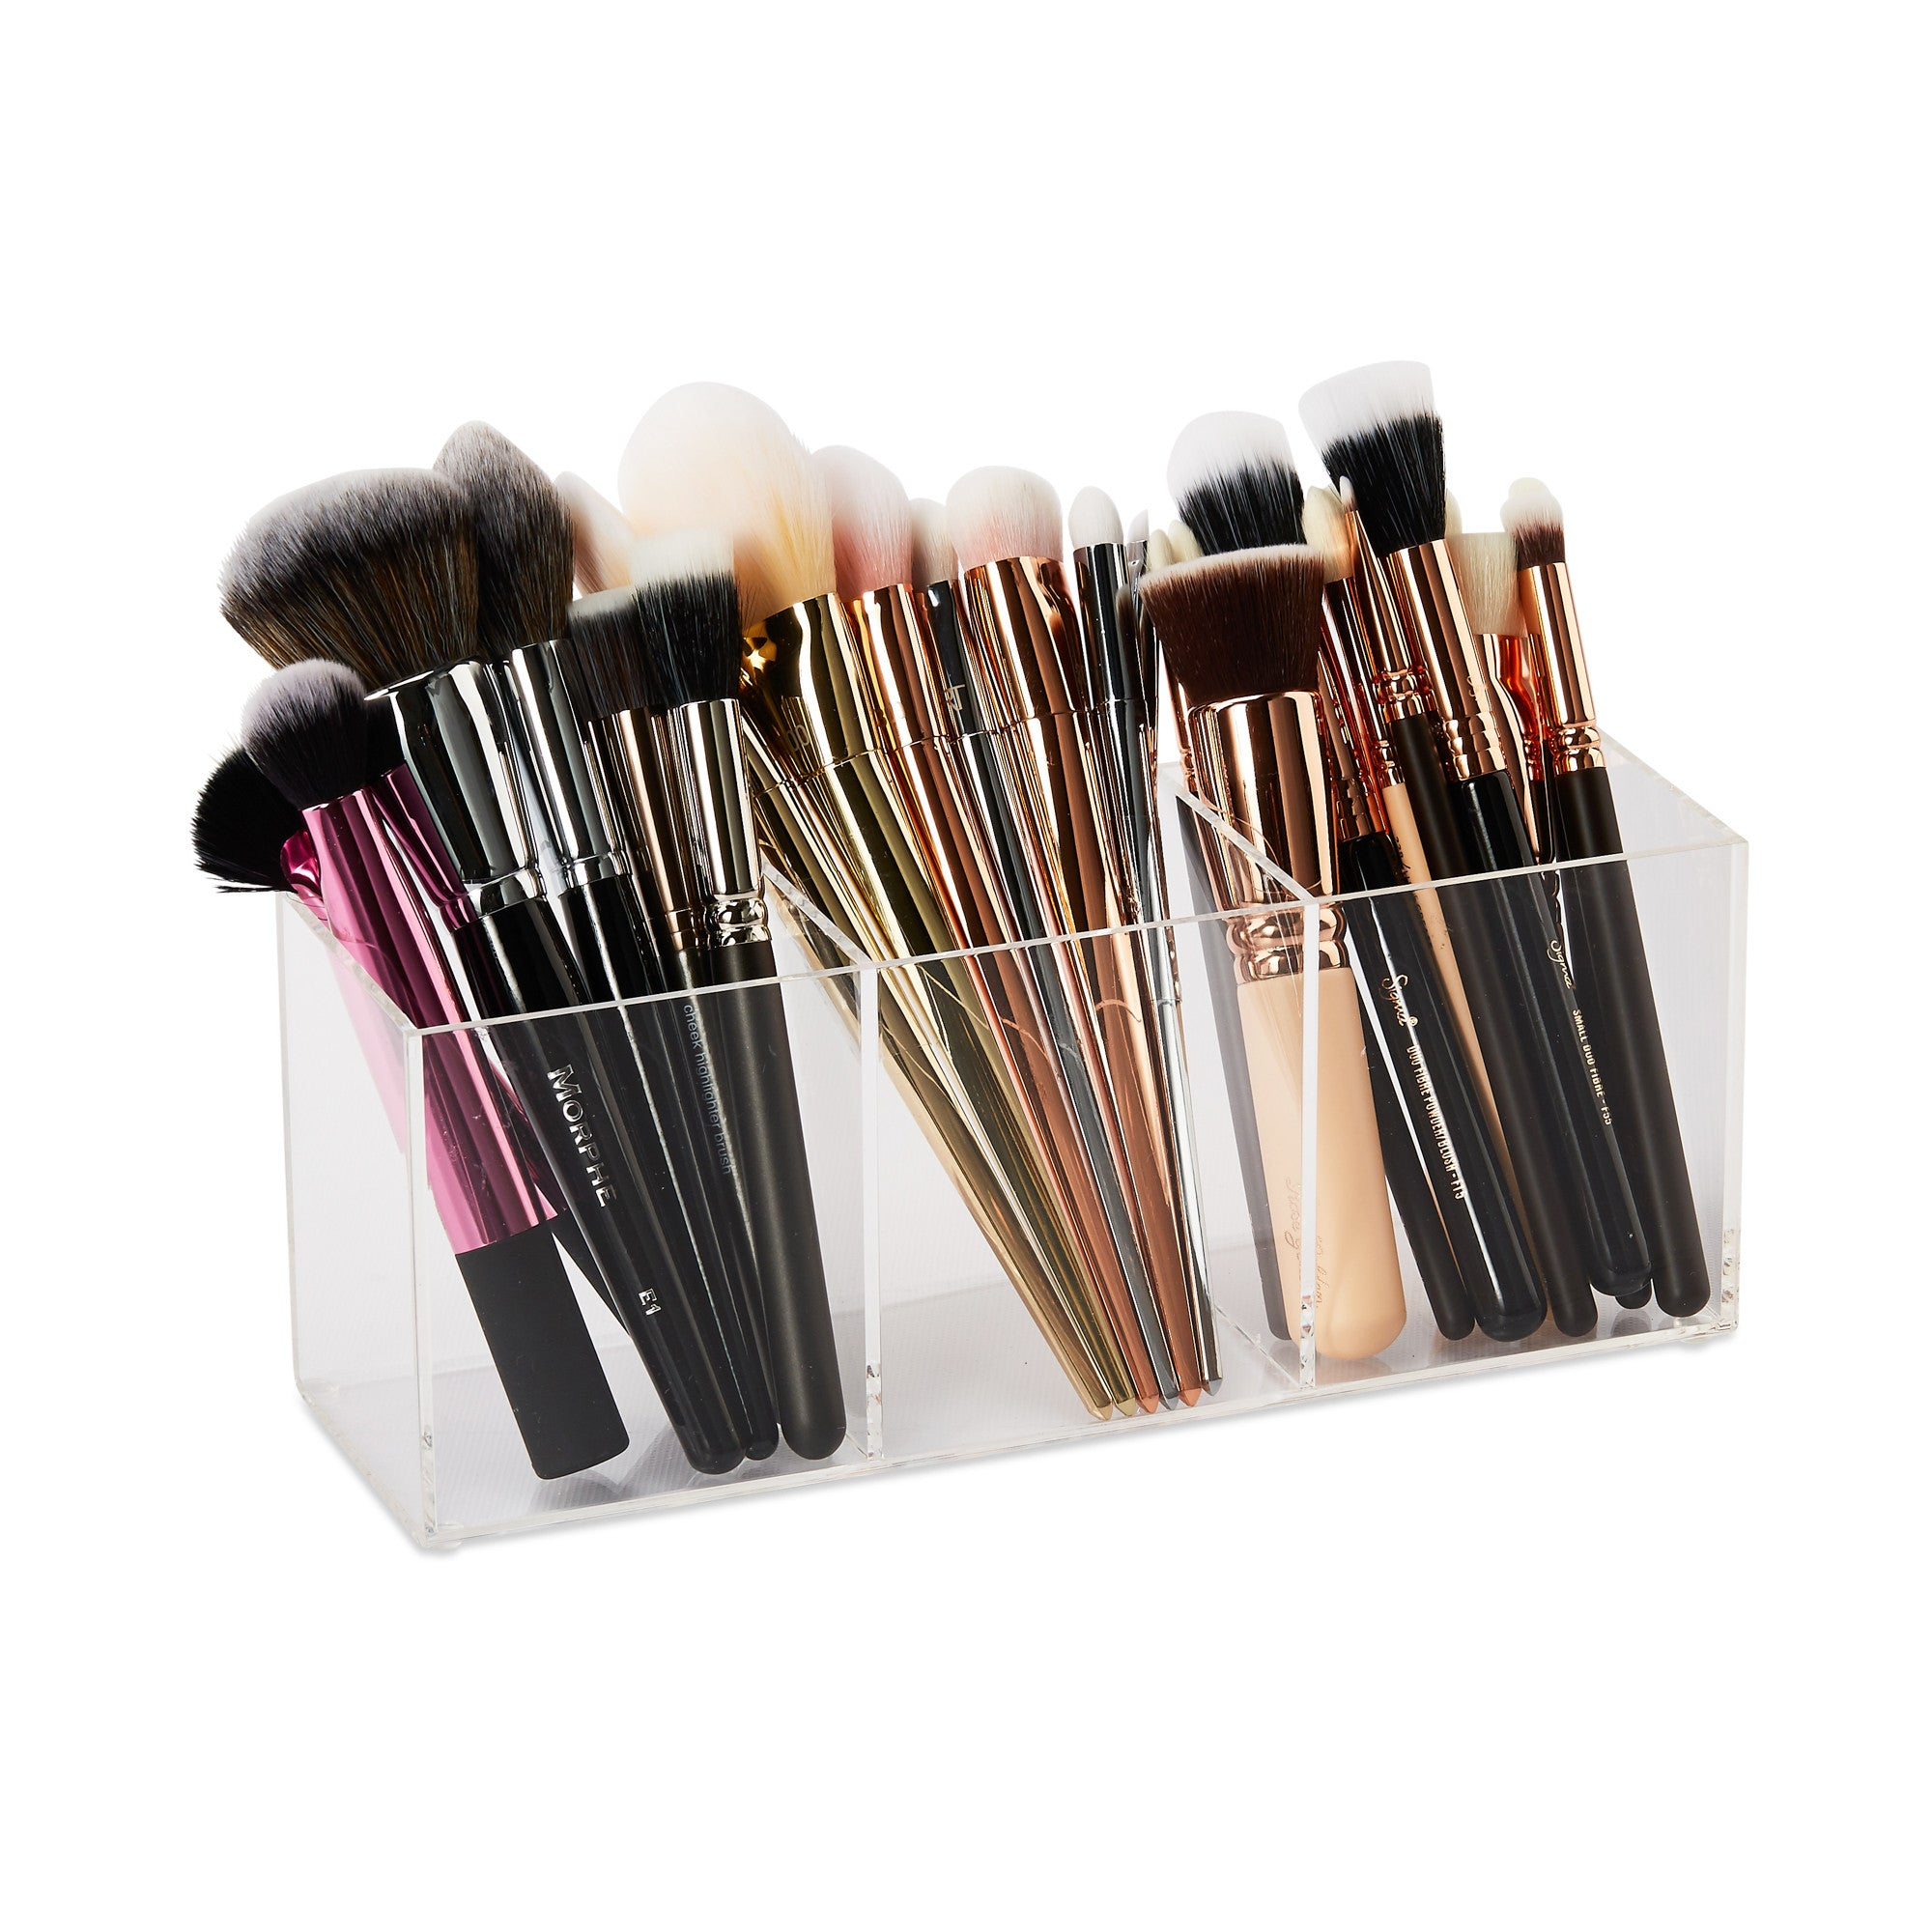 XL Brush Holder - Beauty Game